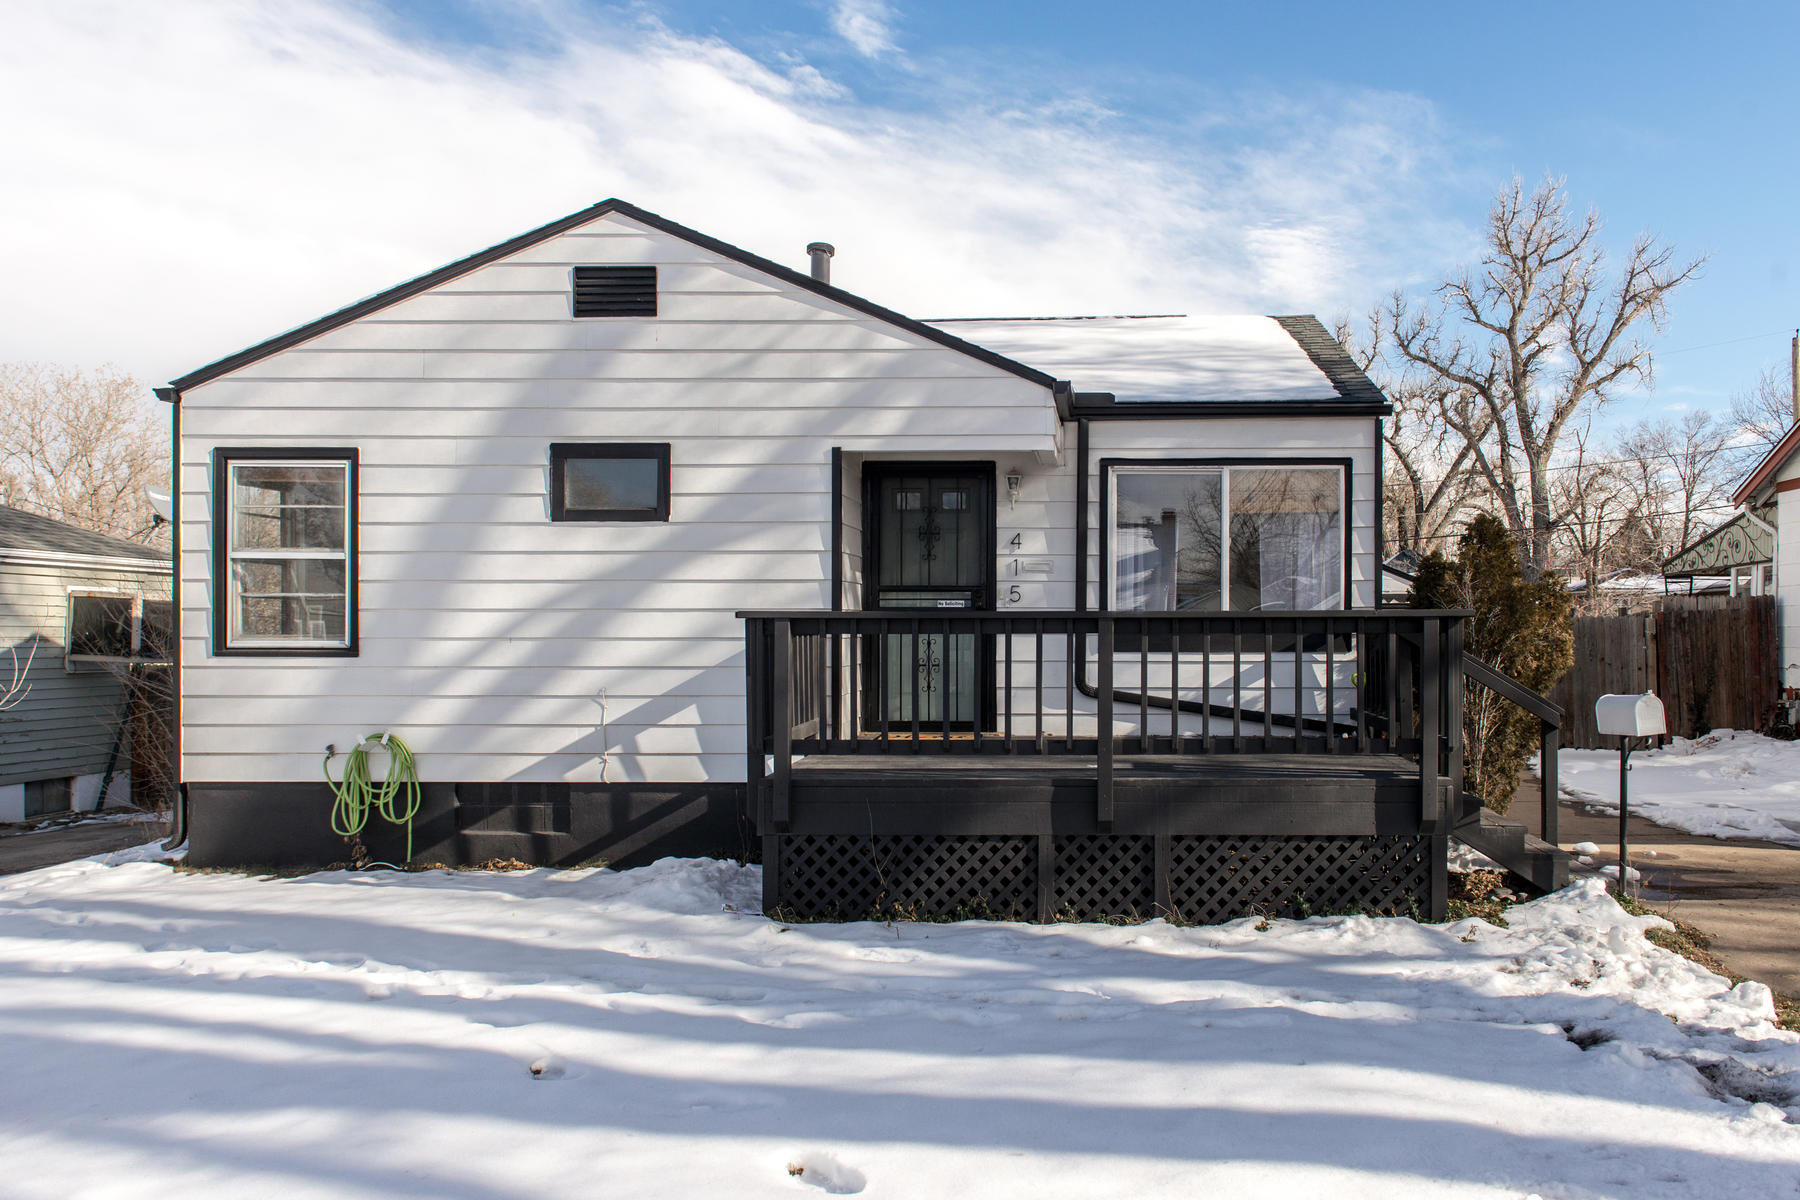 Single Family Home for Active at Charming 1950's Ranch Home with West Facing Front Deck 4150 S Elati St Englewood, Colorado 80110 United States